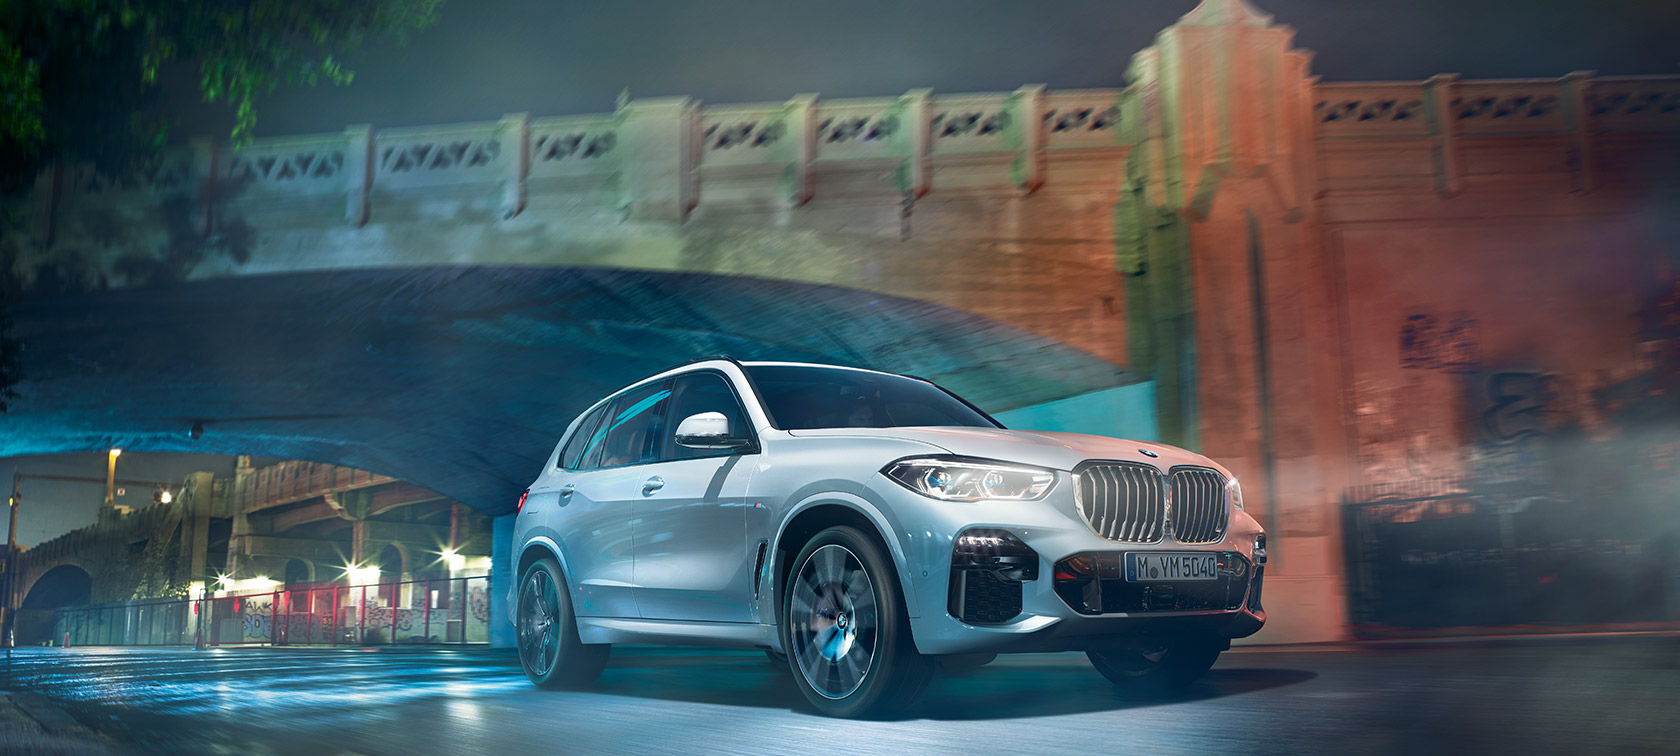 BMW X5 G05 2018 Mineral White metallizzato vista anteriore a tre quarti in movimento di notte